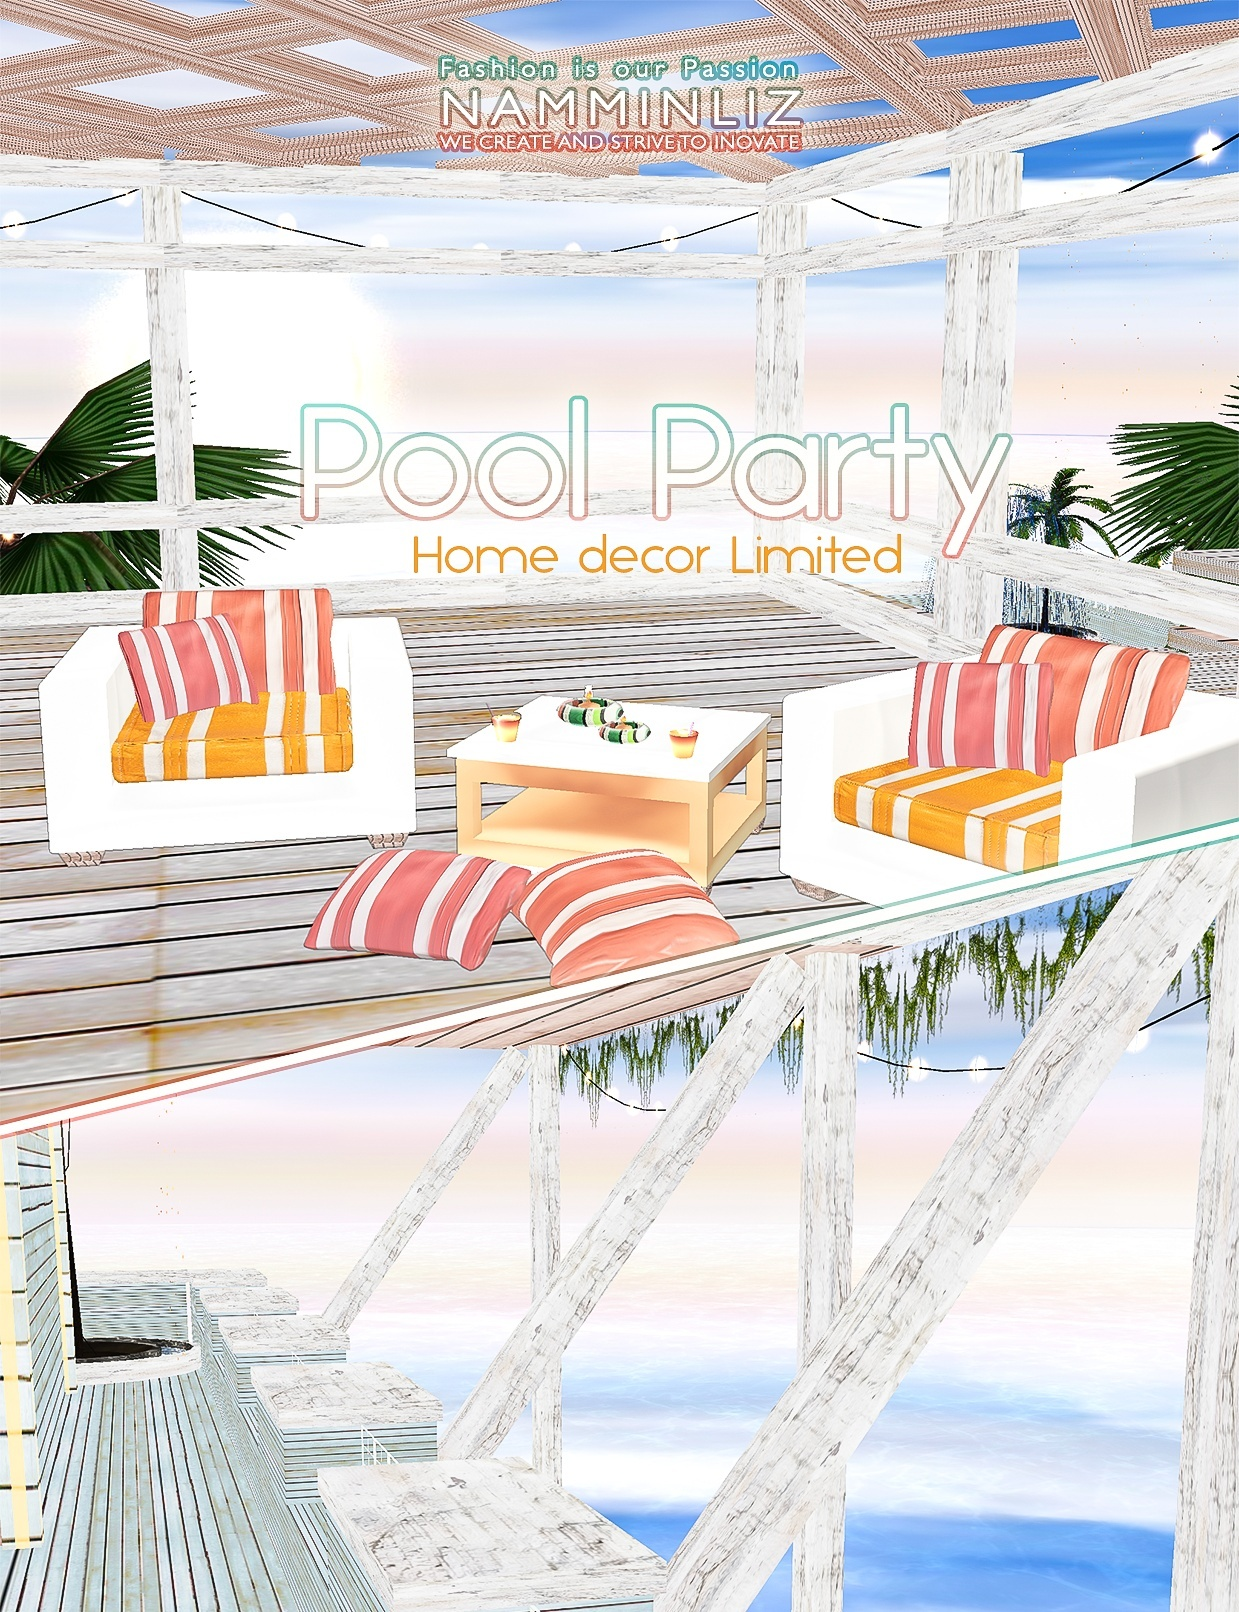 Pool Party imvu Home decor 30 Textures PNG 5*.CHKN Limited to 4 person only